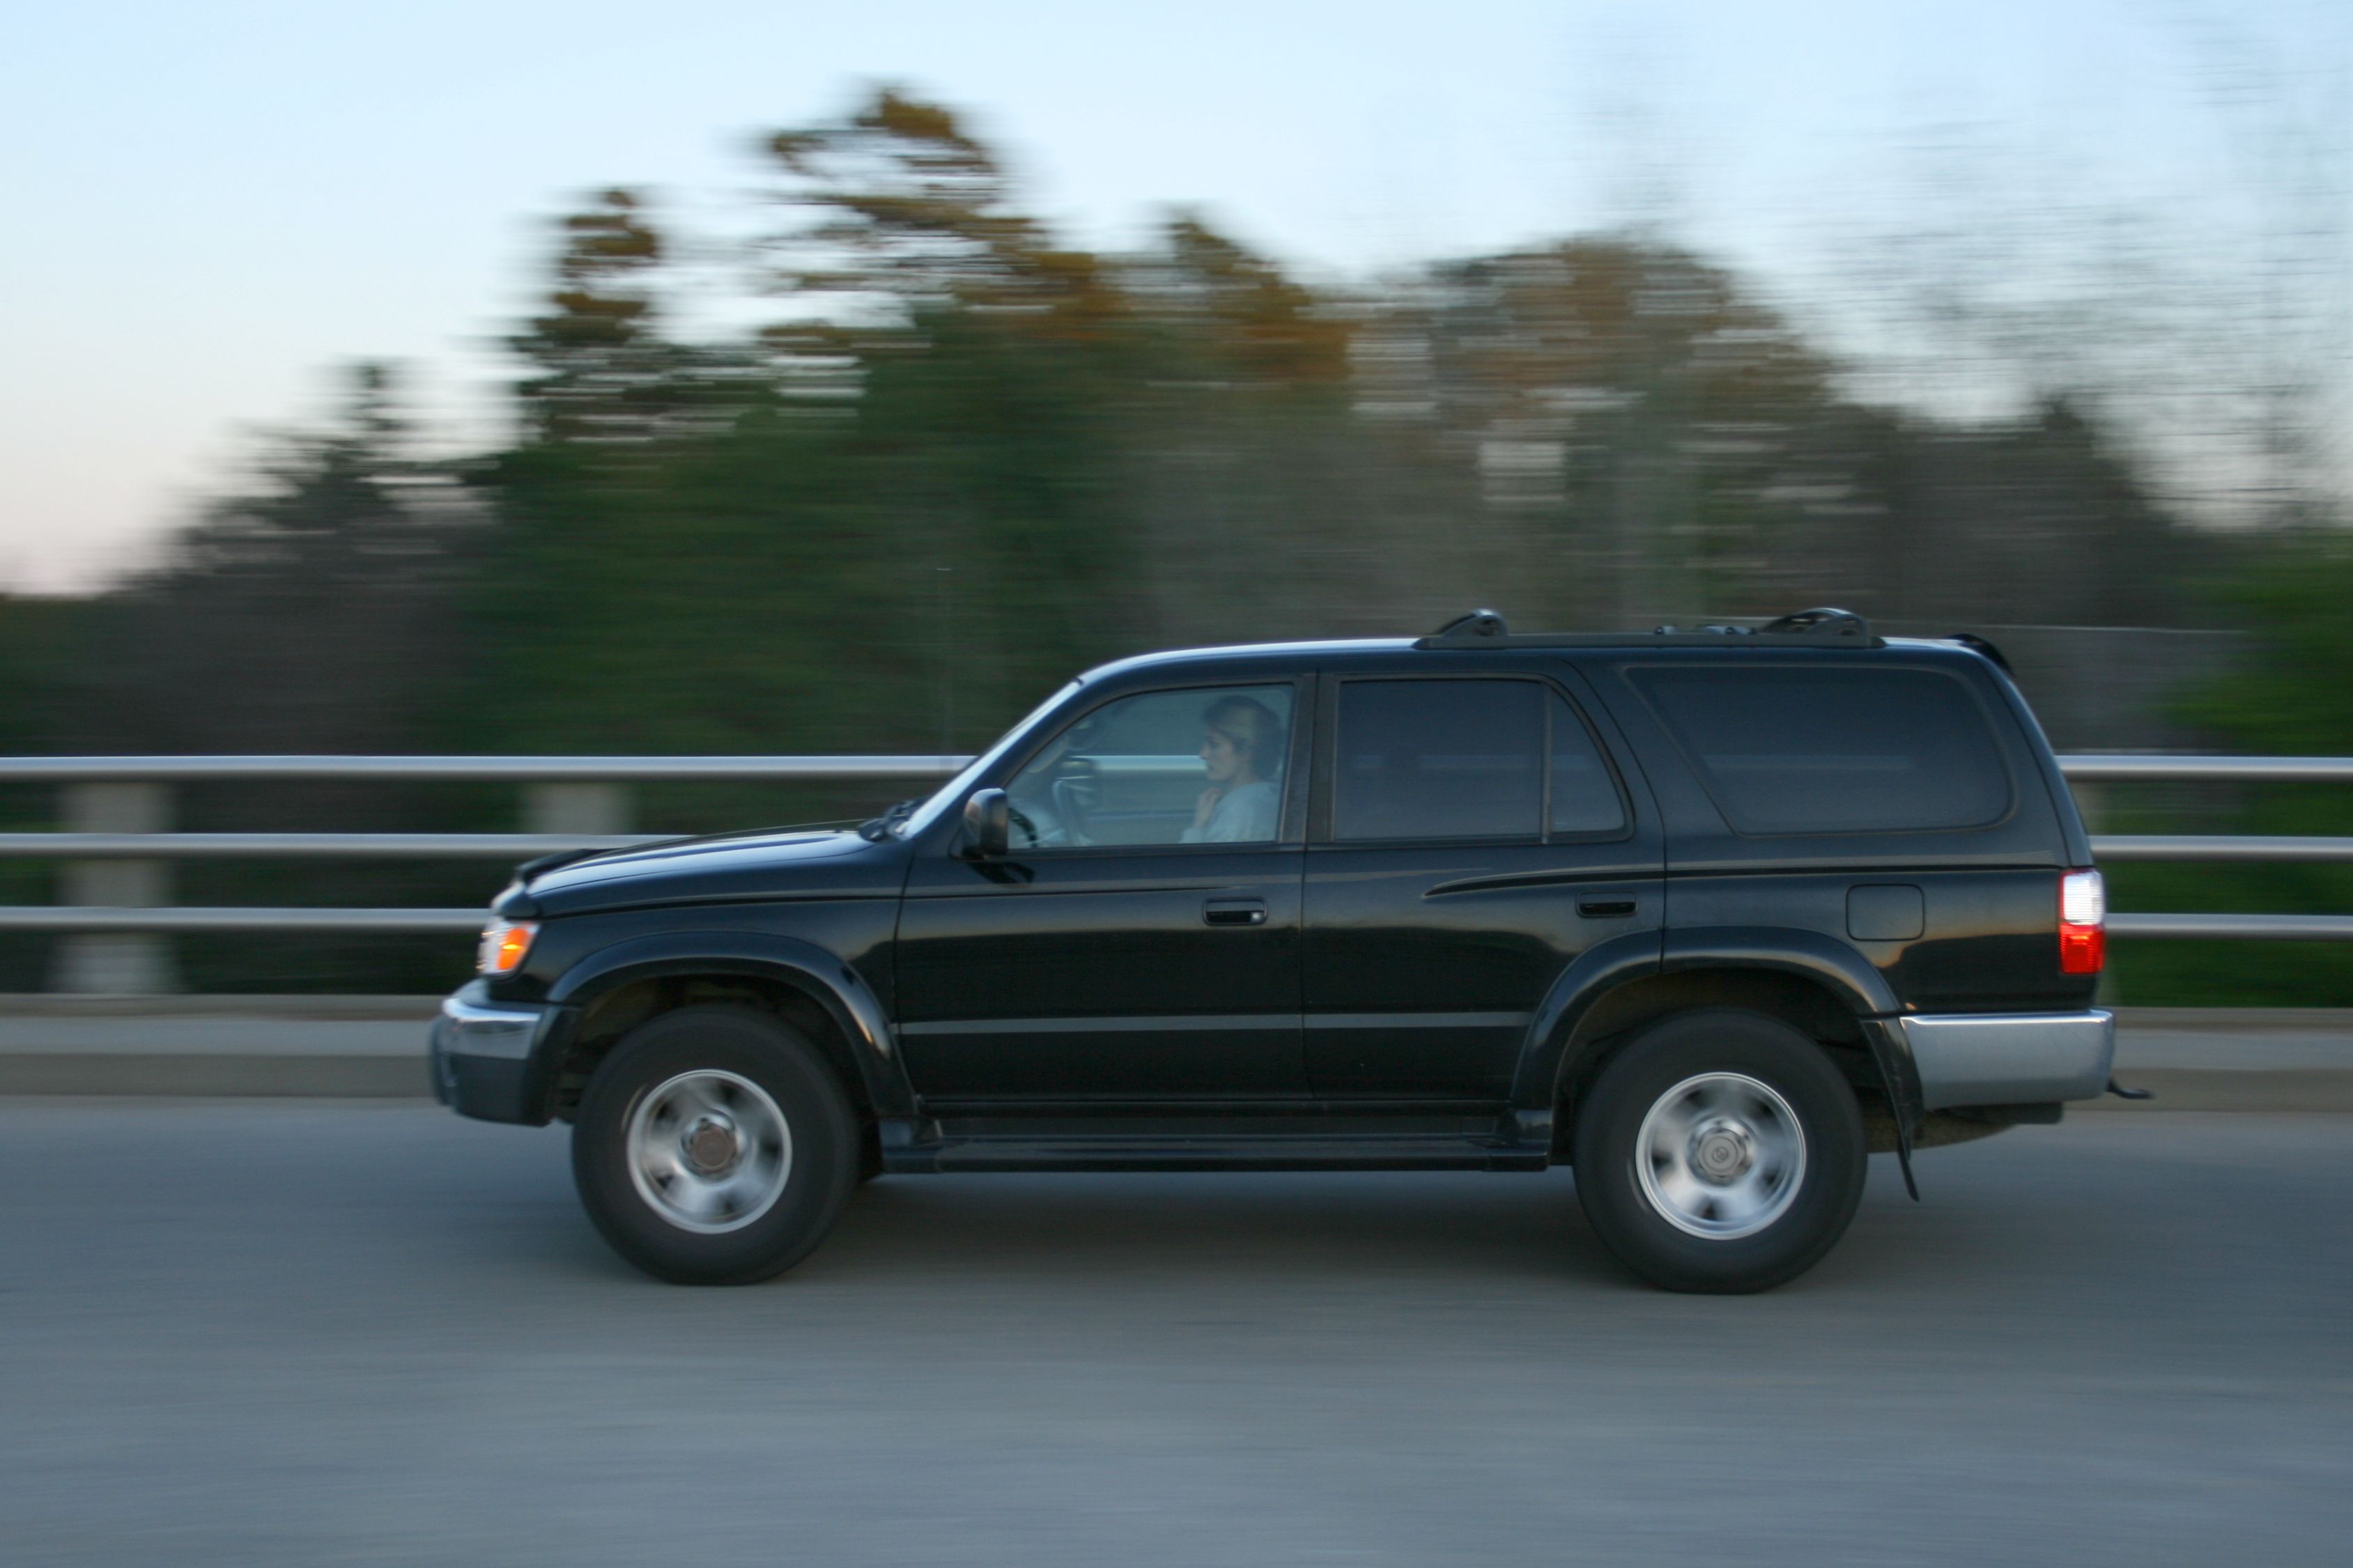 File 2009 03 20 Black Toyota Suv Nb On S Lasalle St In